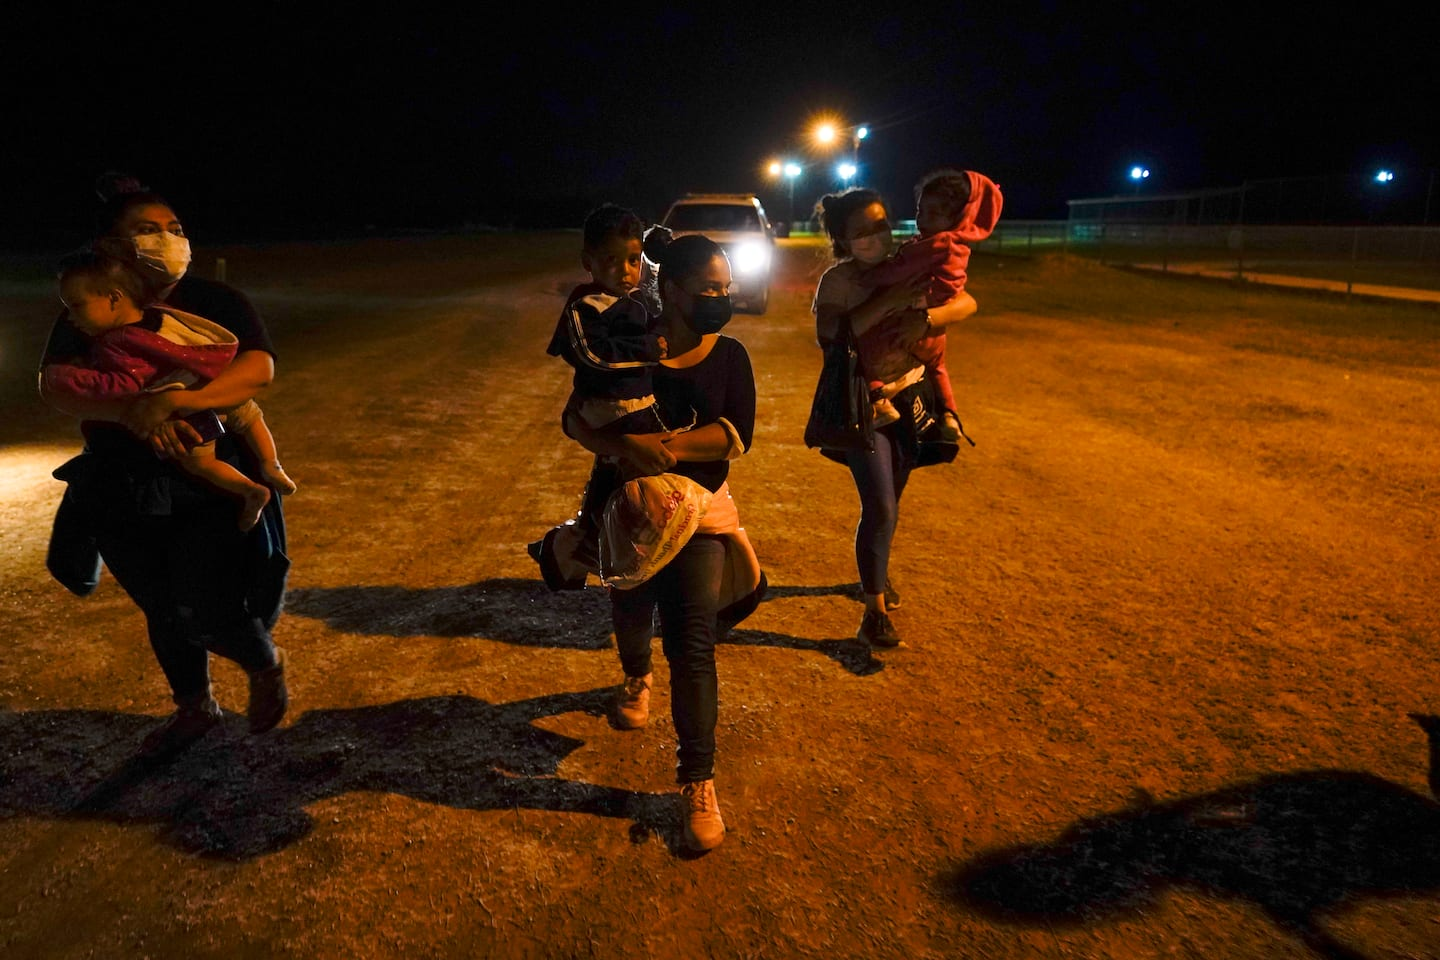 Central American women fleeing domestic violence face uphill battle to gain asylum in U.S.